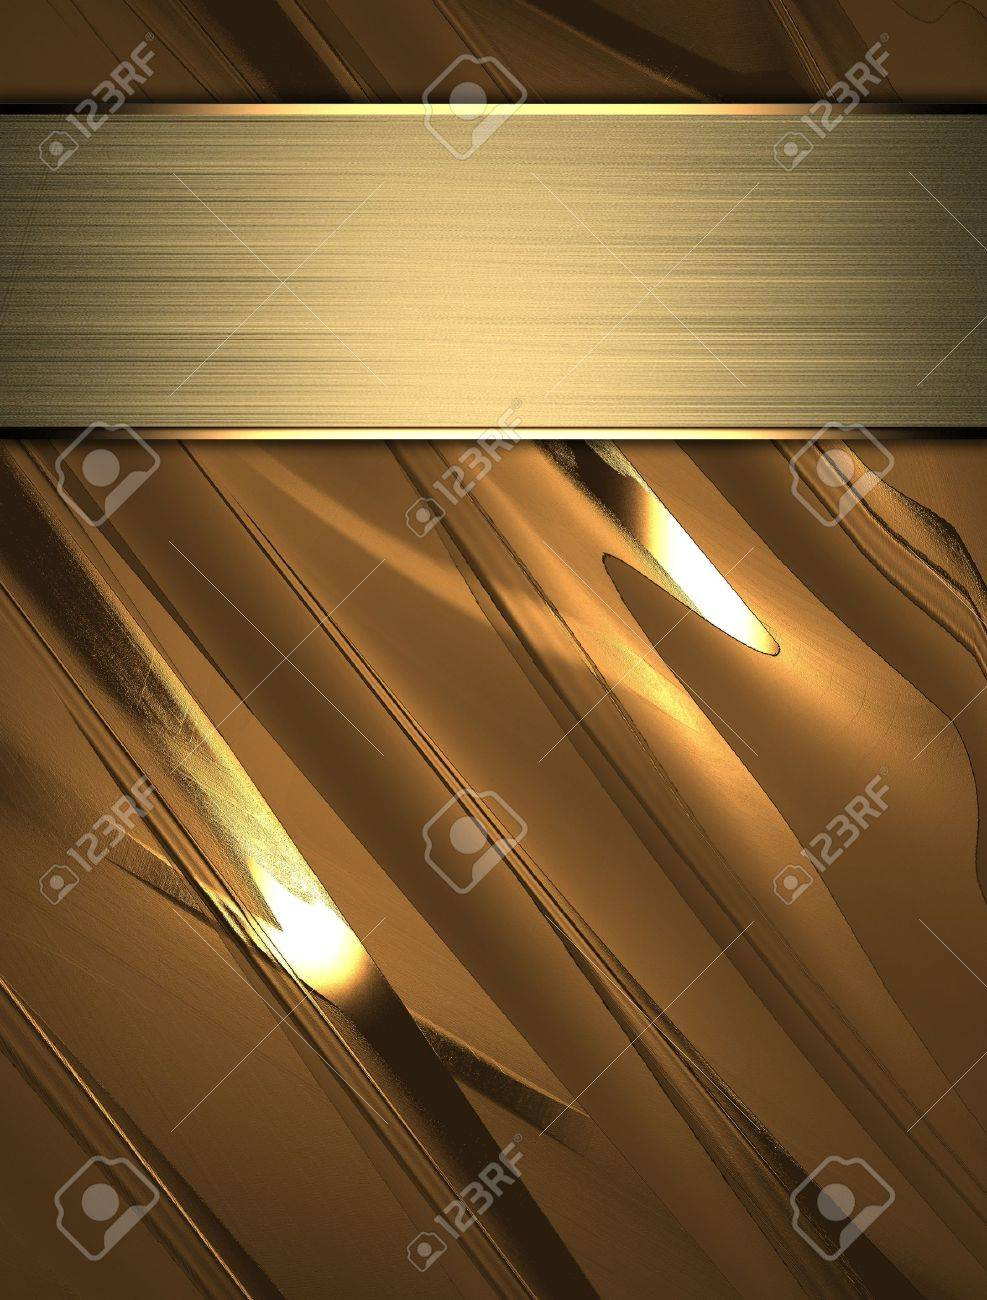 Gold Background with golden name plate Stock Photo - 15250466